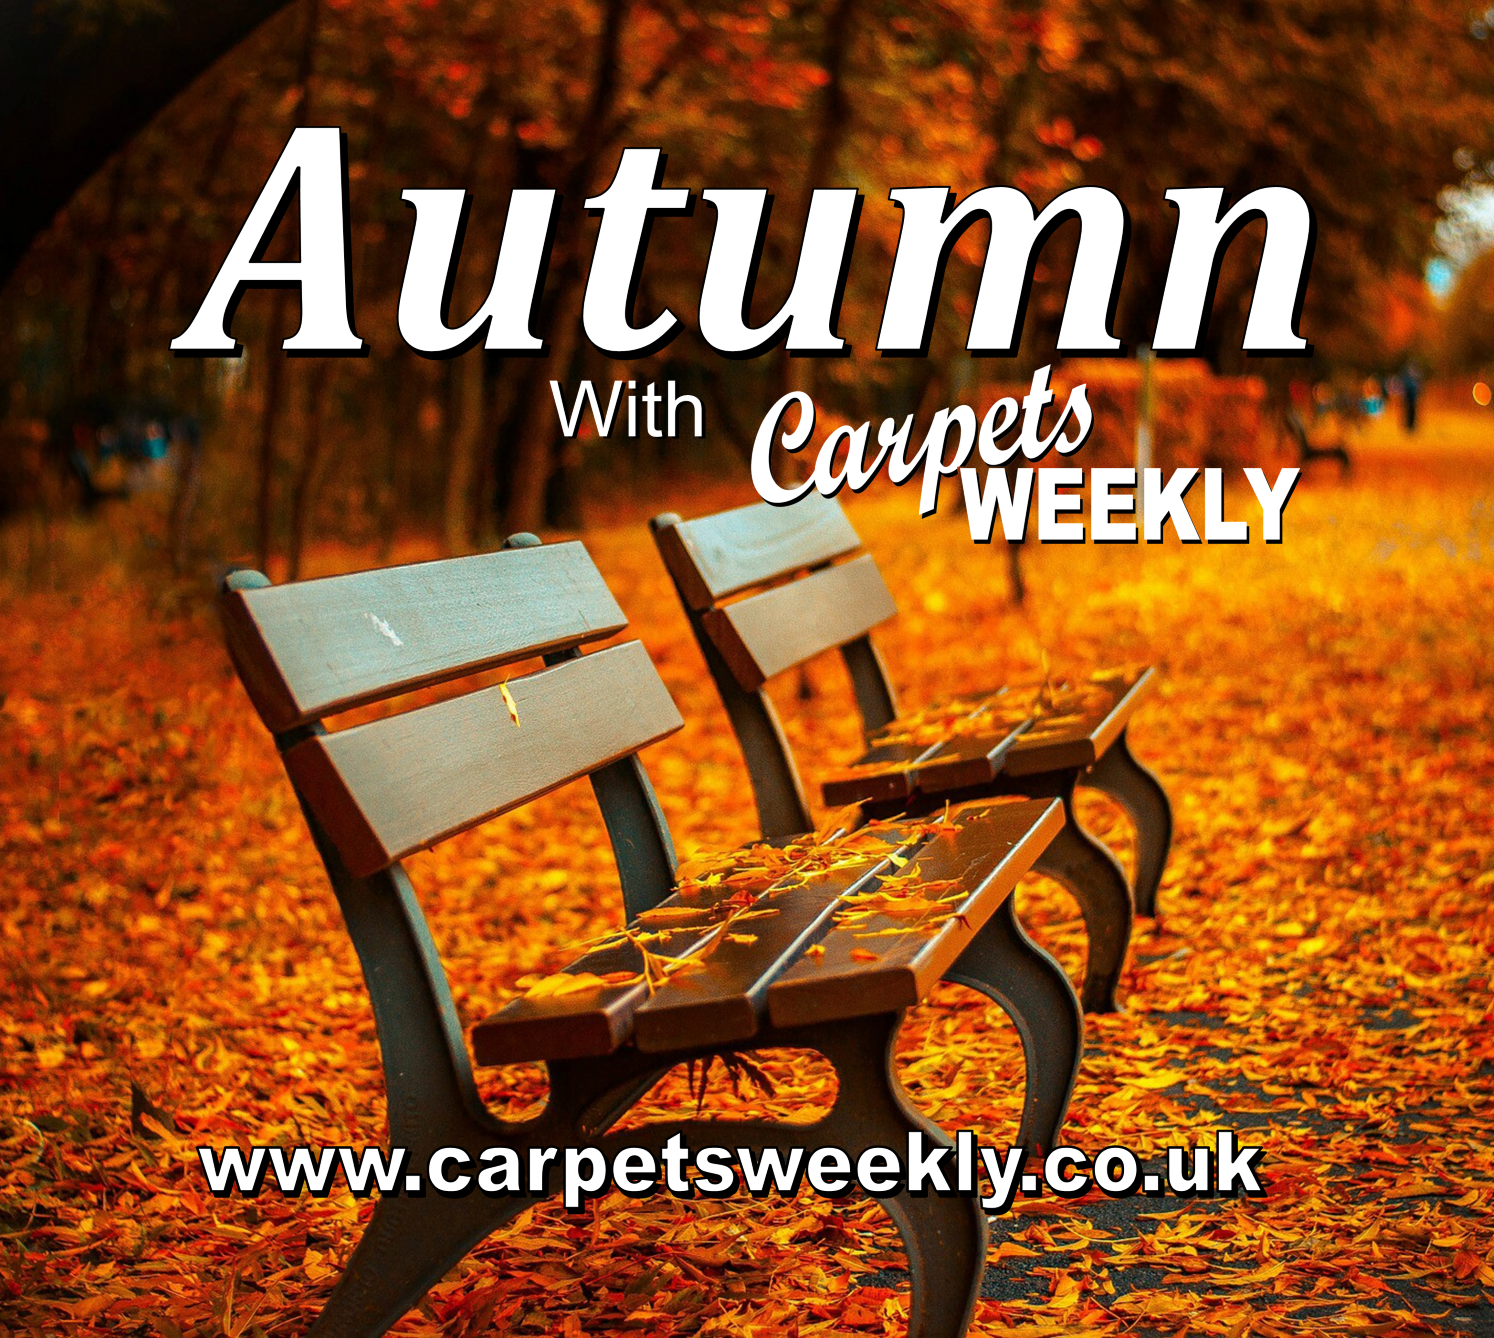 Autumn with Carpets Weekly